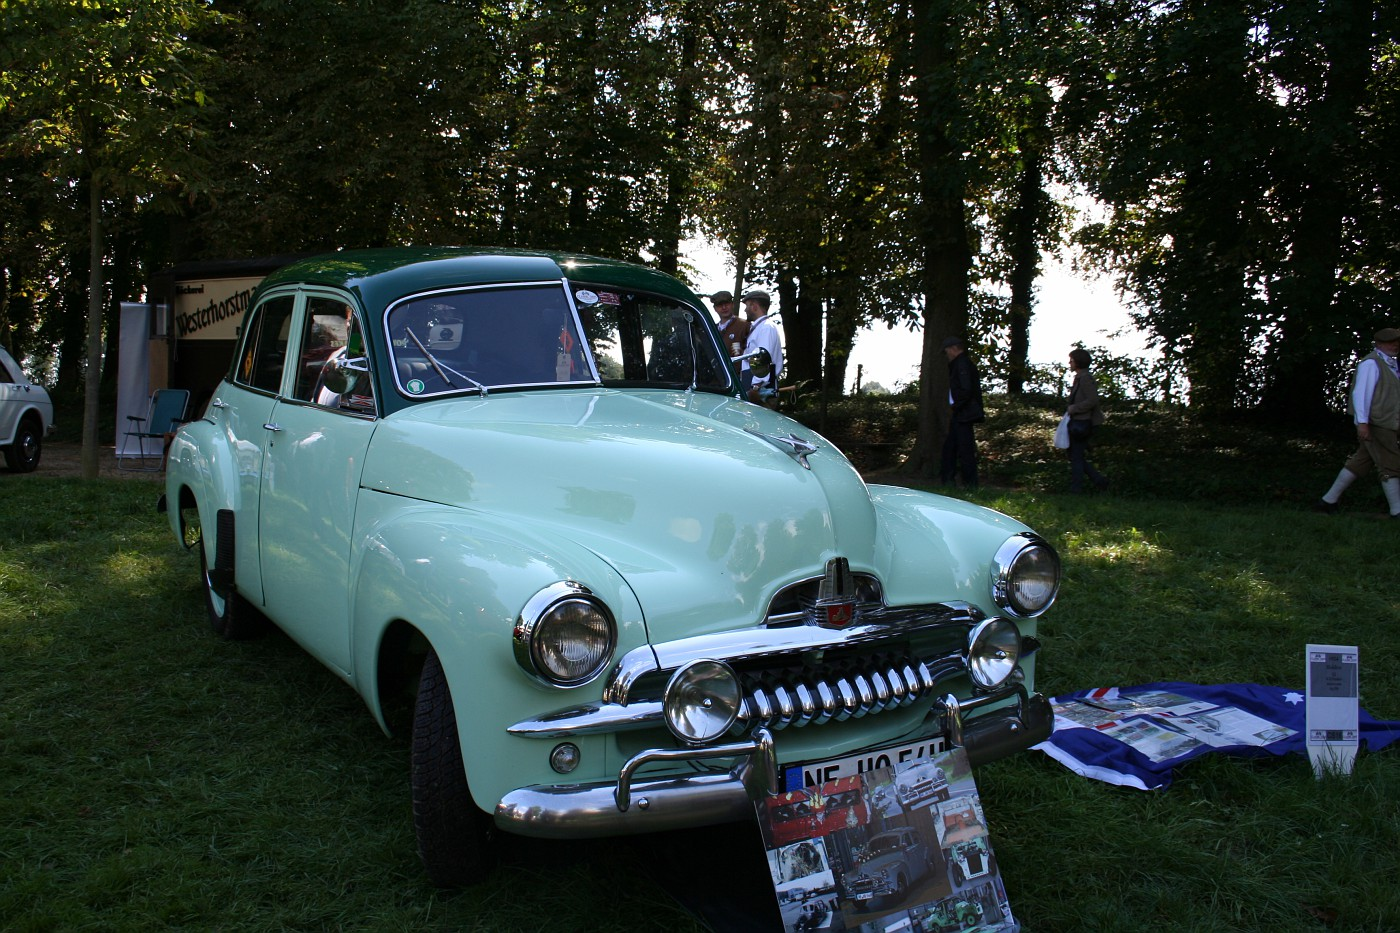 Photo 1954 Holden Fj Special Schloss Dyck Classic Days 2011 Album Cars N Trucks 4 You Fotki Com Photo And Video Sharing Made Easy